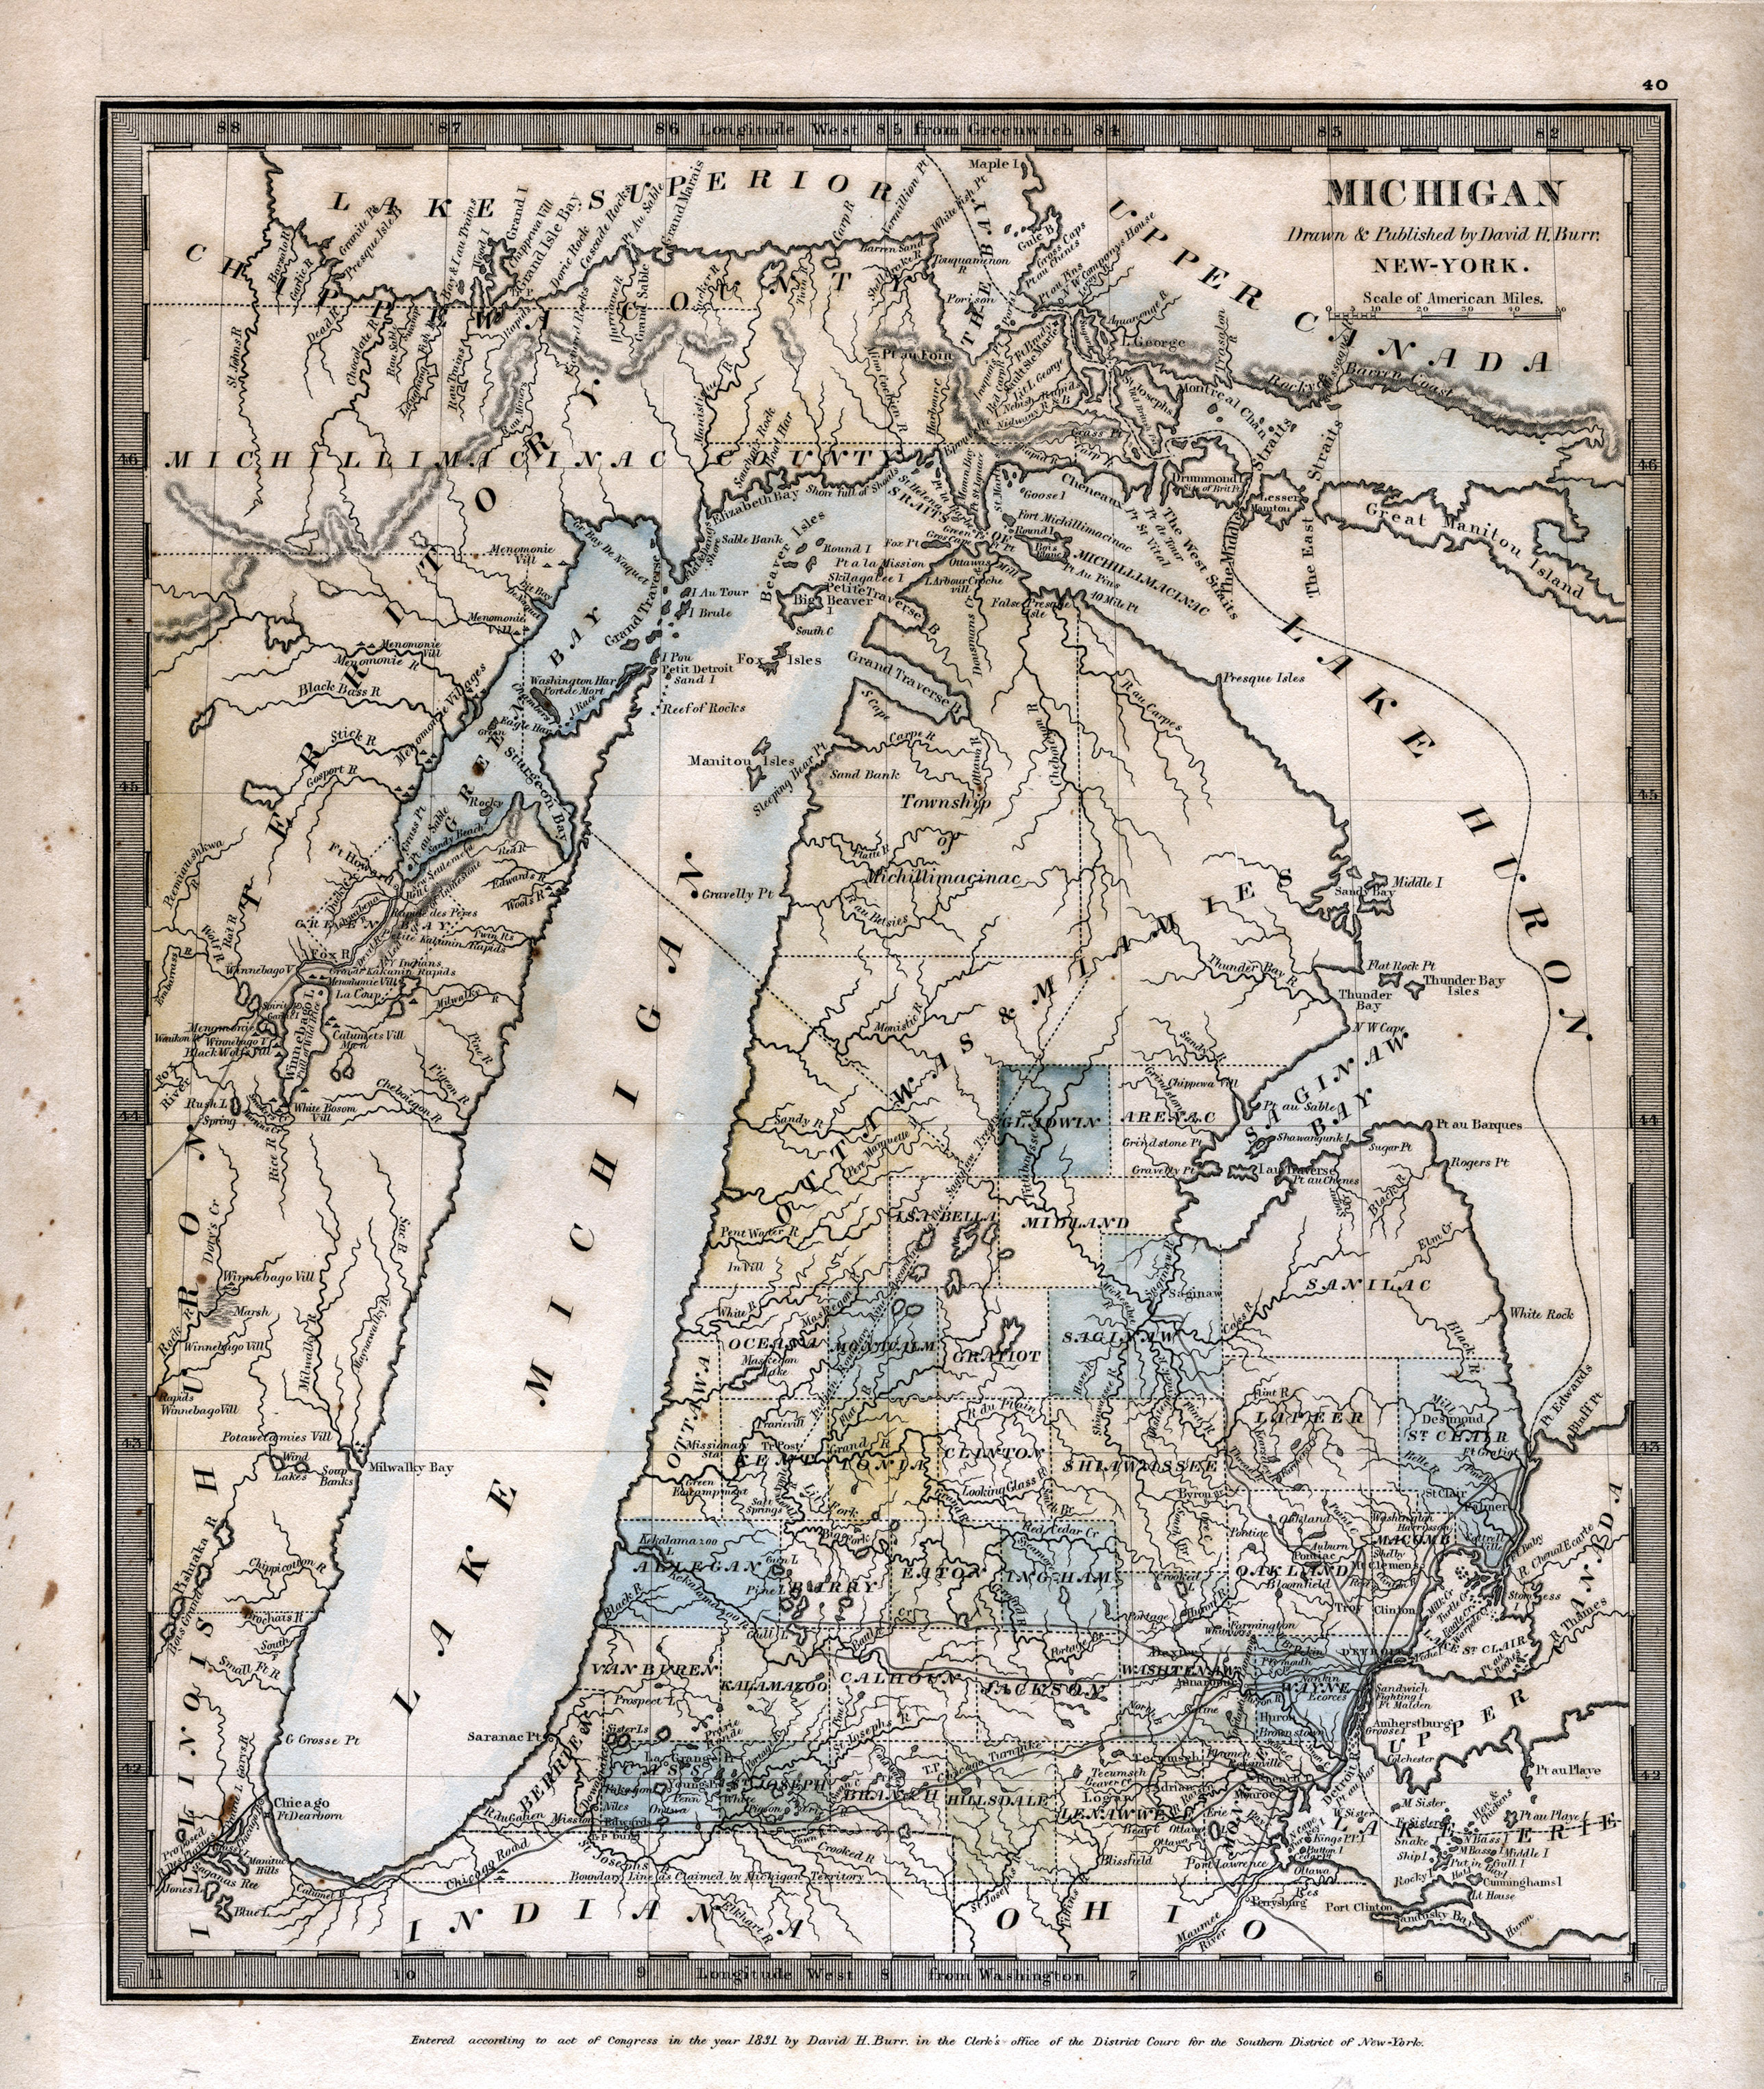 michigan state university map with Burr1831 on Top10ClearestLakesintheUS776 furthermore Fall Colors at Taughannock Falls   Finger Lakes Region  Ulysses  NY likewise Maps msu further 10473 in addition 9.